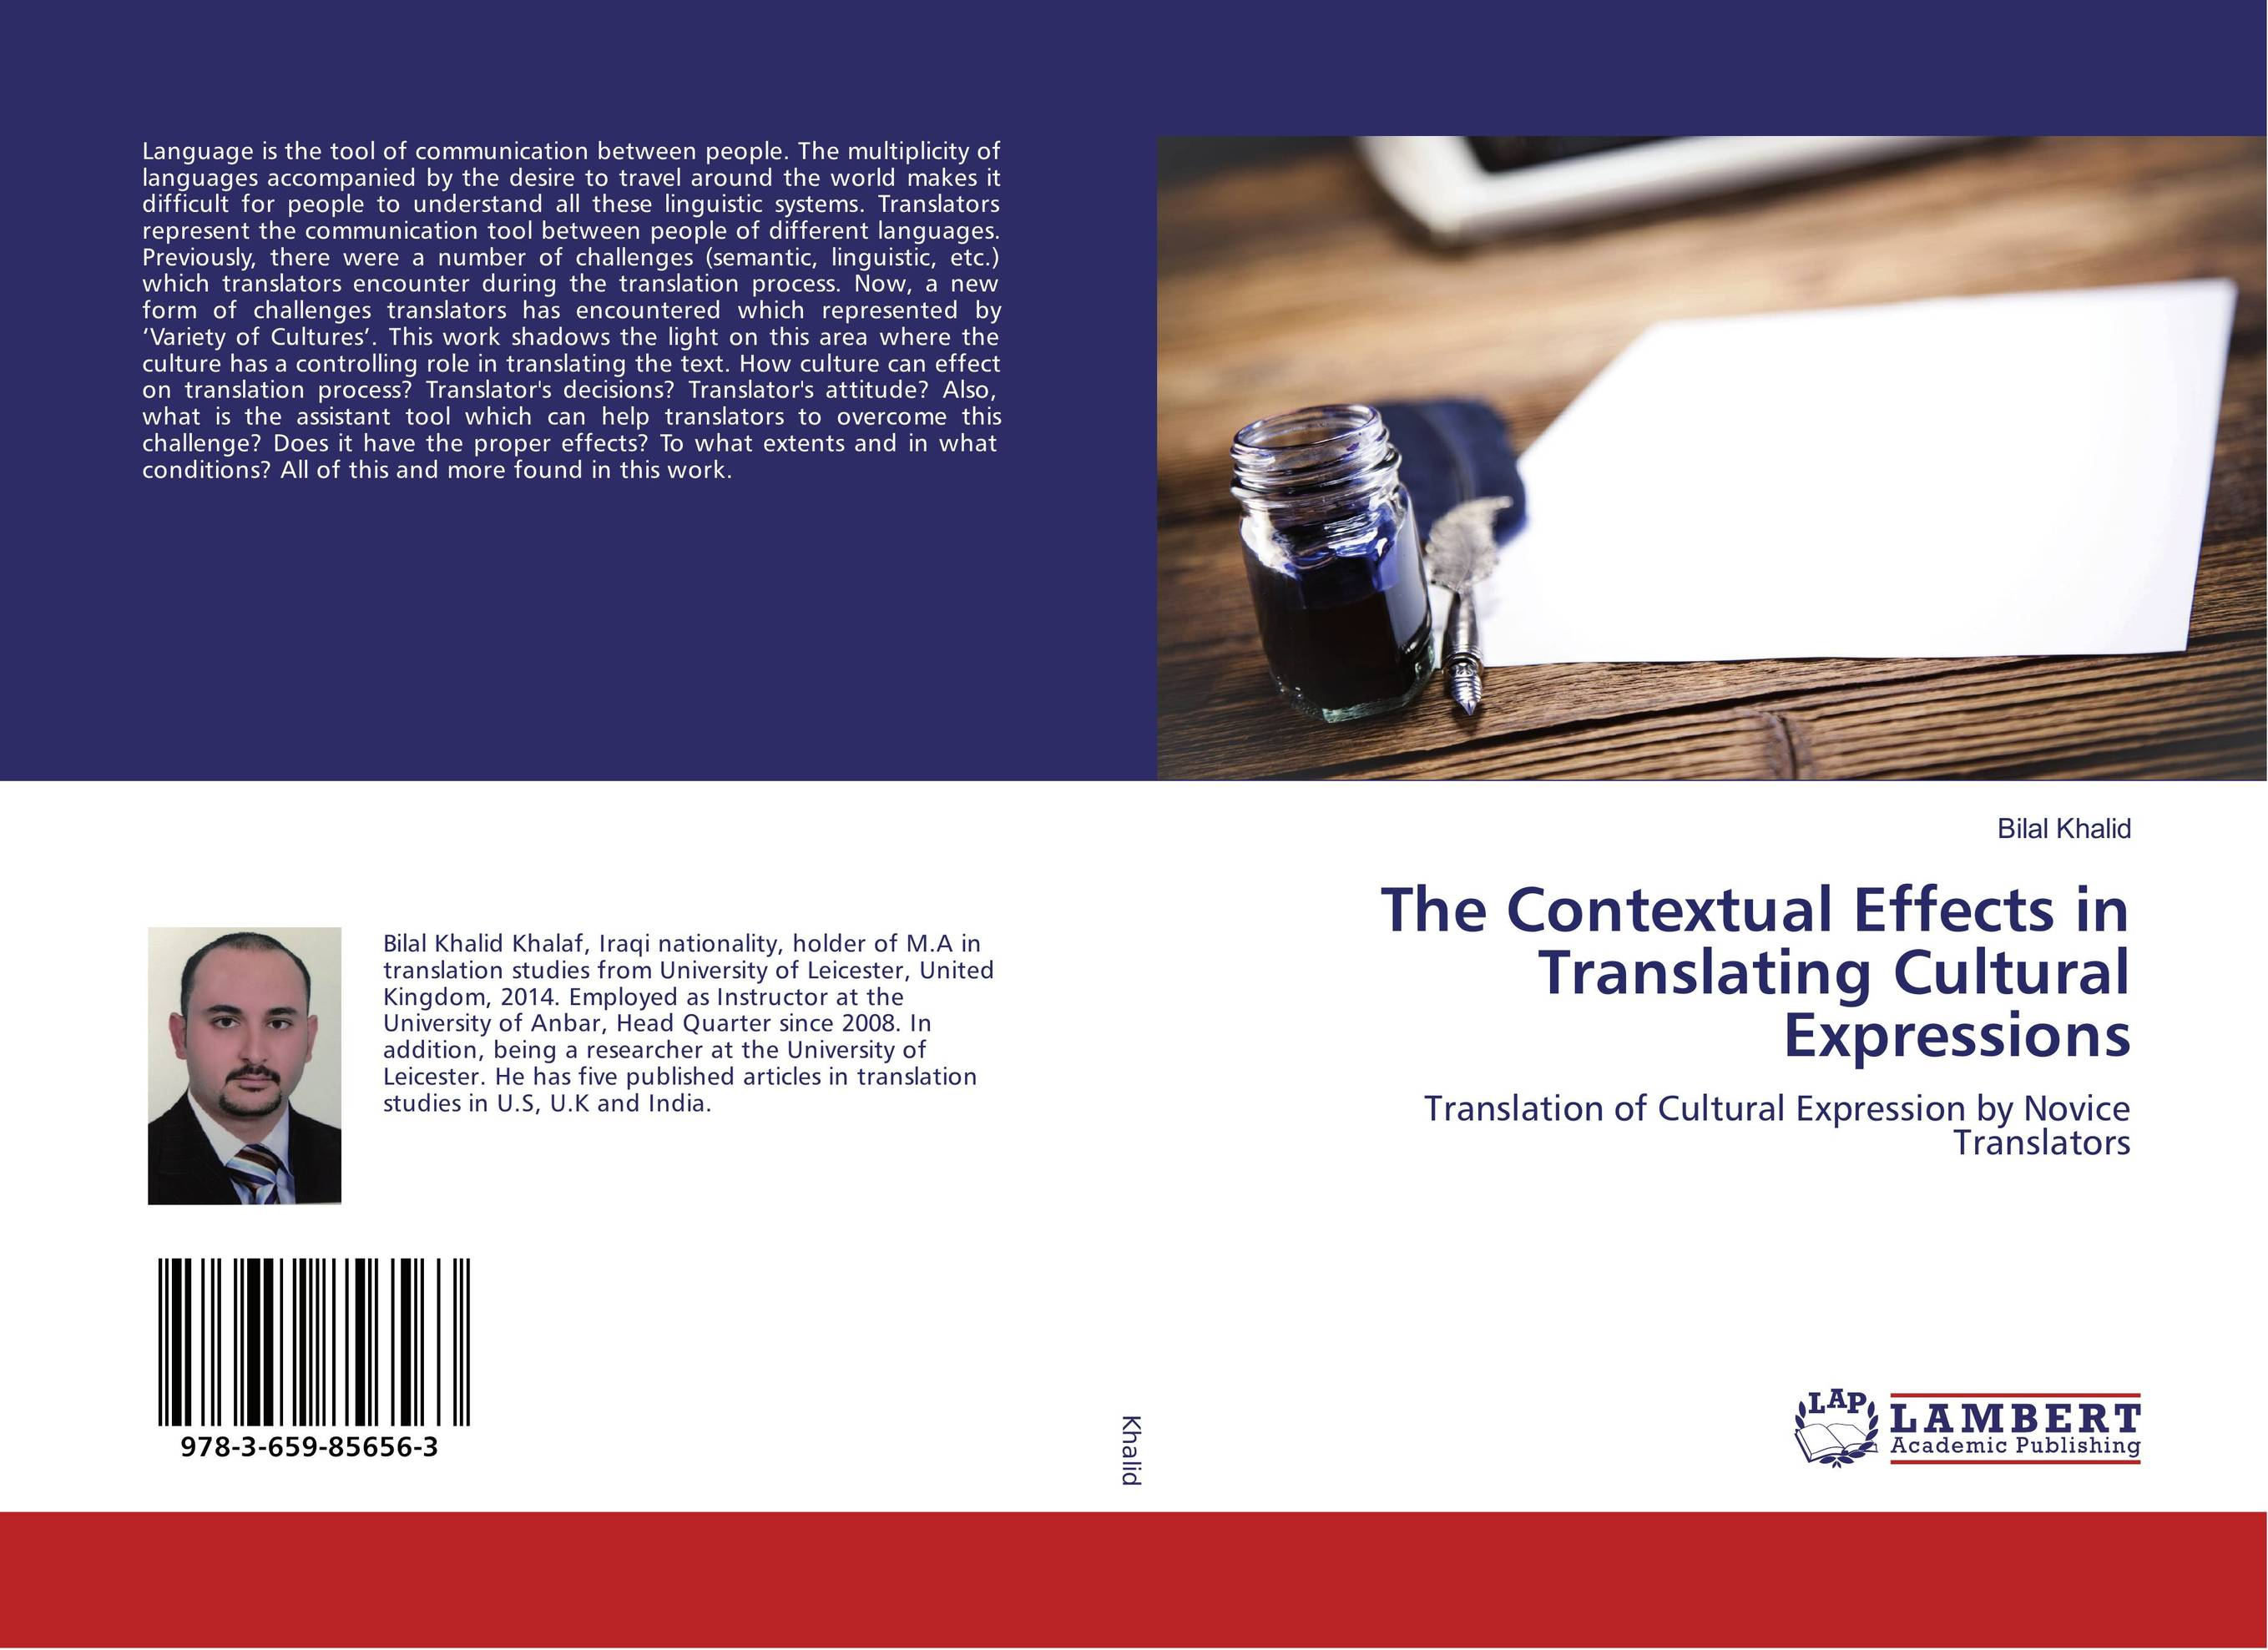 The Contextual Effects in Translating Cultural Expressions introduction to the languages of the world